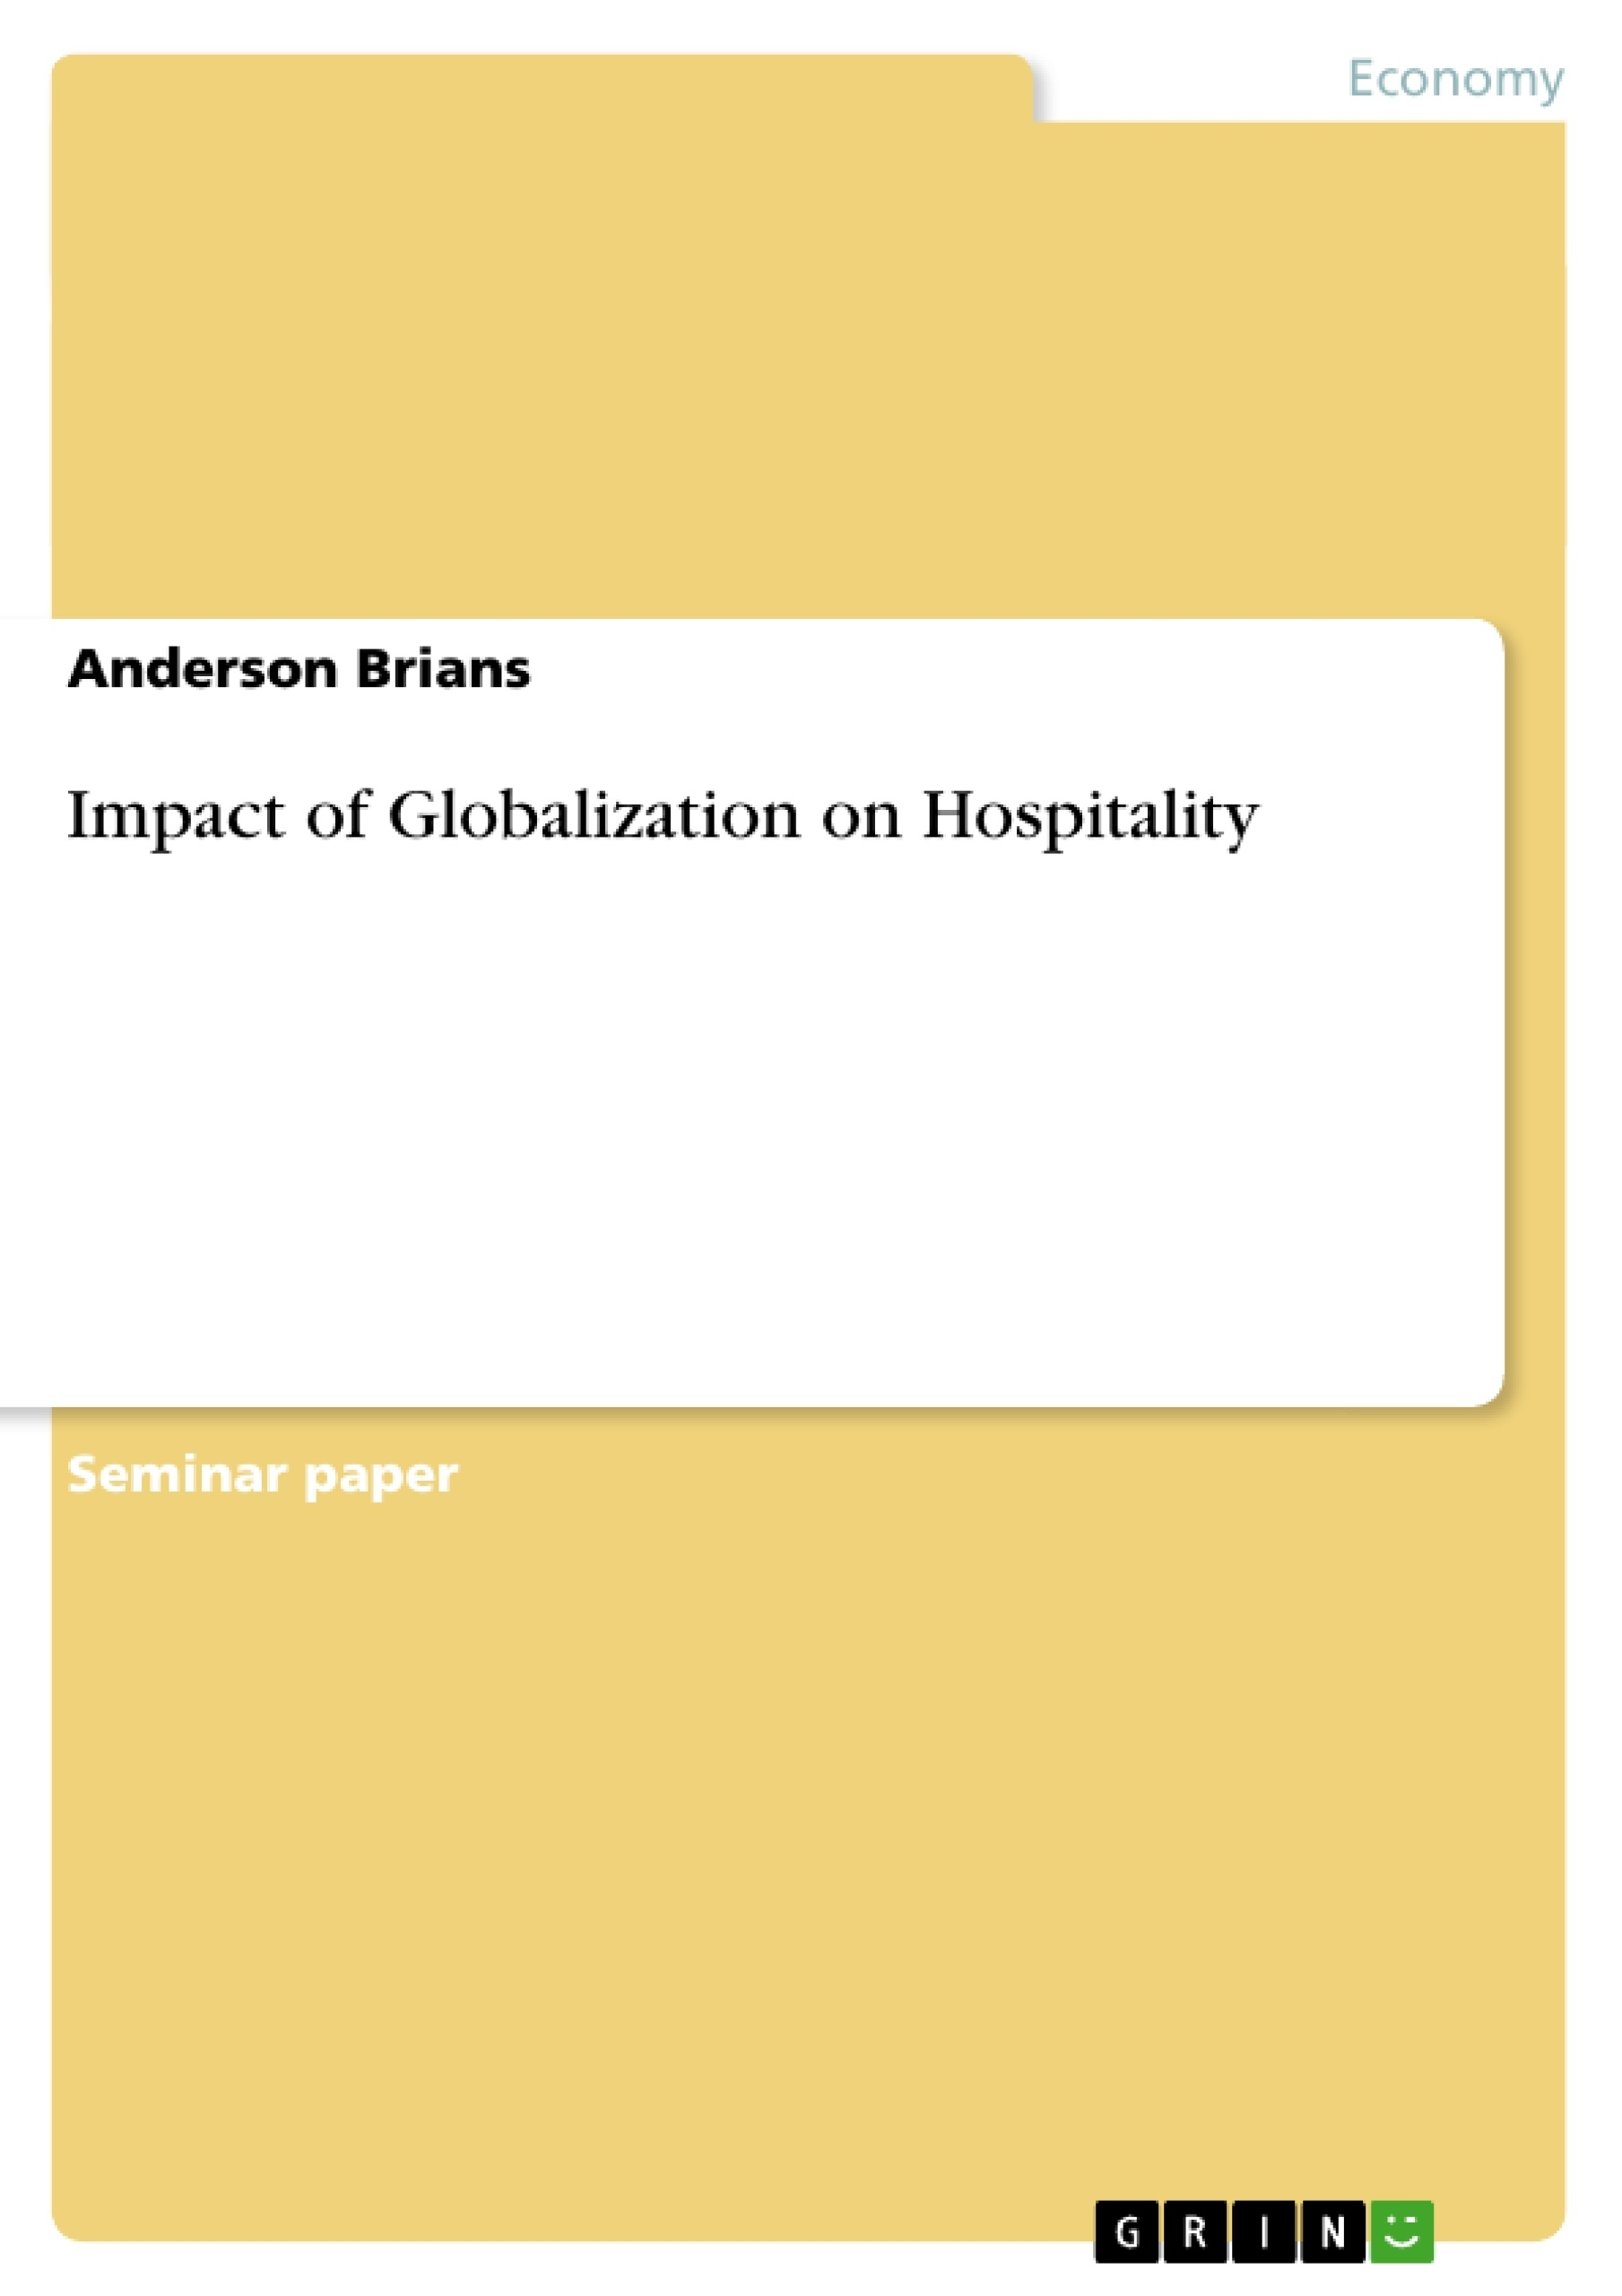 Title: Impact of Globalization on Hospitality